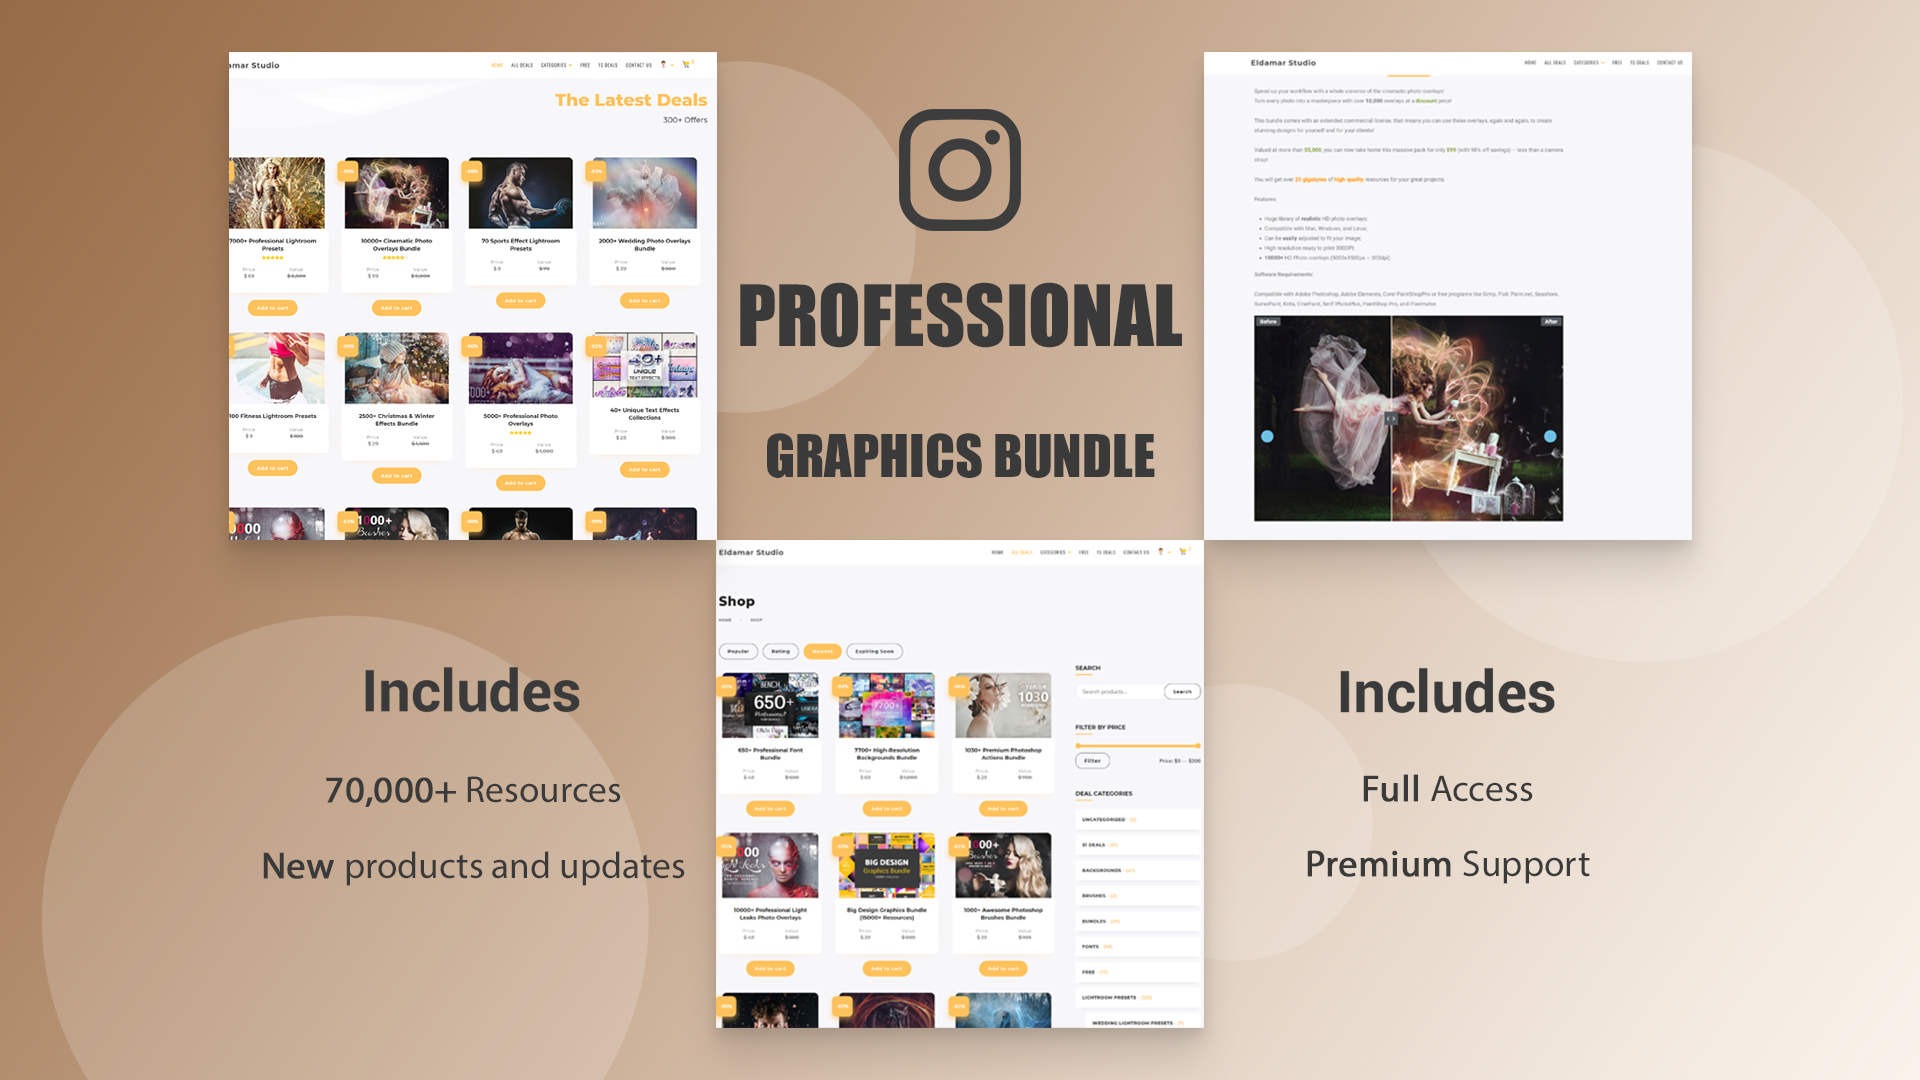 The Professional Graphic Bundle (70,000+ Resources) Screenshot